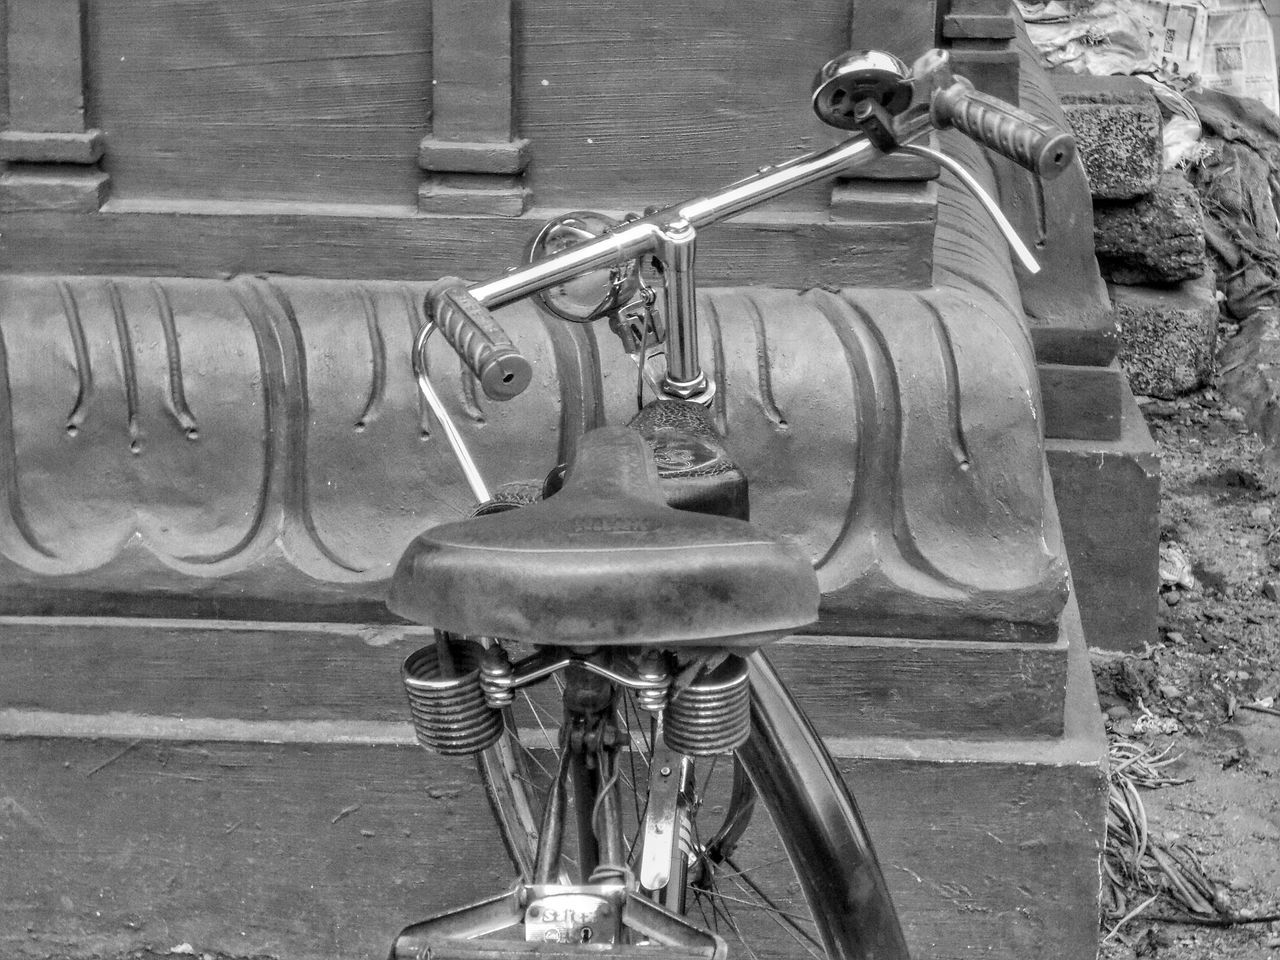 Bicycle Vintage Bicycle Puttur EyeEmBestPics Pic Of The Day Eyeemphotography Nikonl330 EyeEm Best Shots EyeEm Gallery Eyeem India India Karnataka Streetphotography Street Photography Showcase April Street Life Blackandwhite Photography Black And White Photography Black&white Black & White Blackandwhite Streetphoto_bw EyeEm Best Shots - Black + White